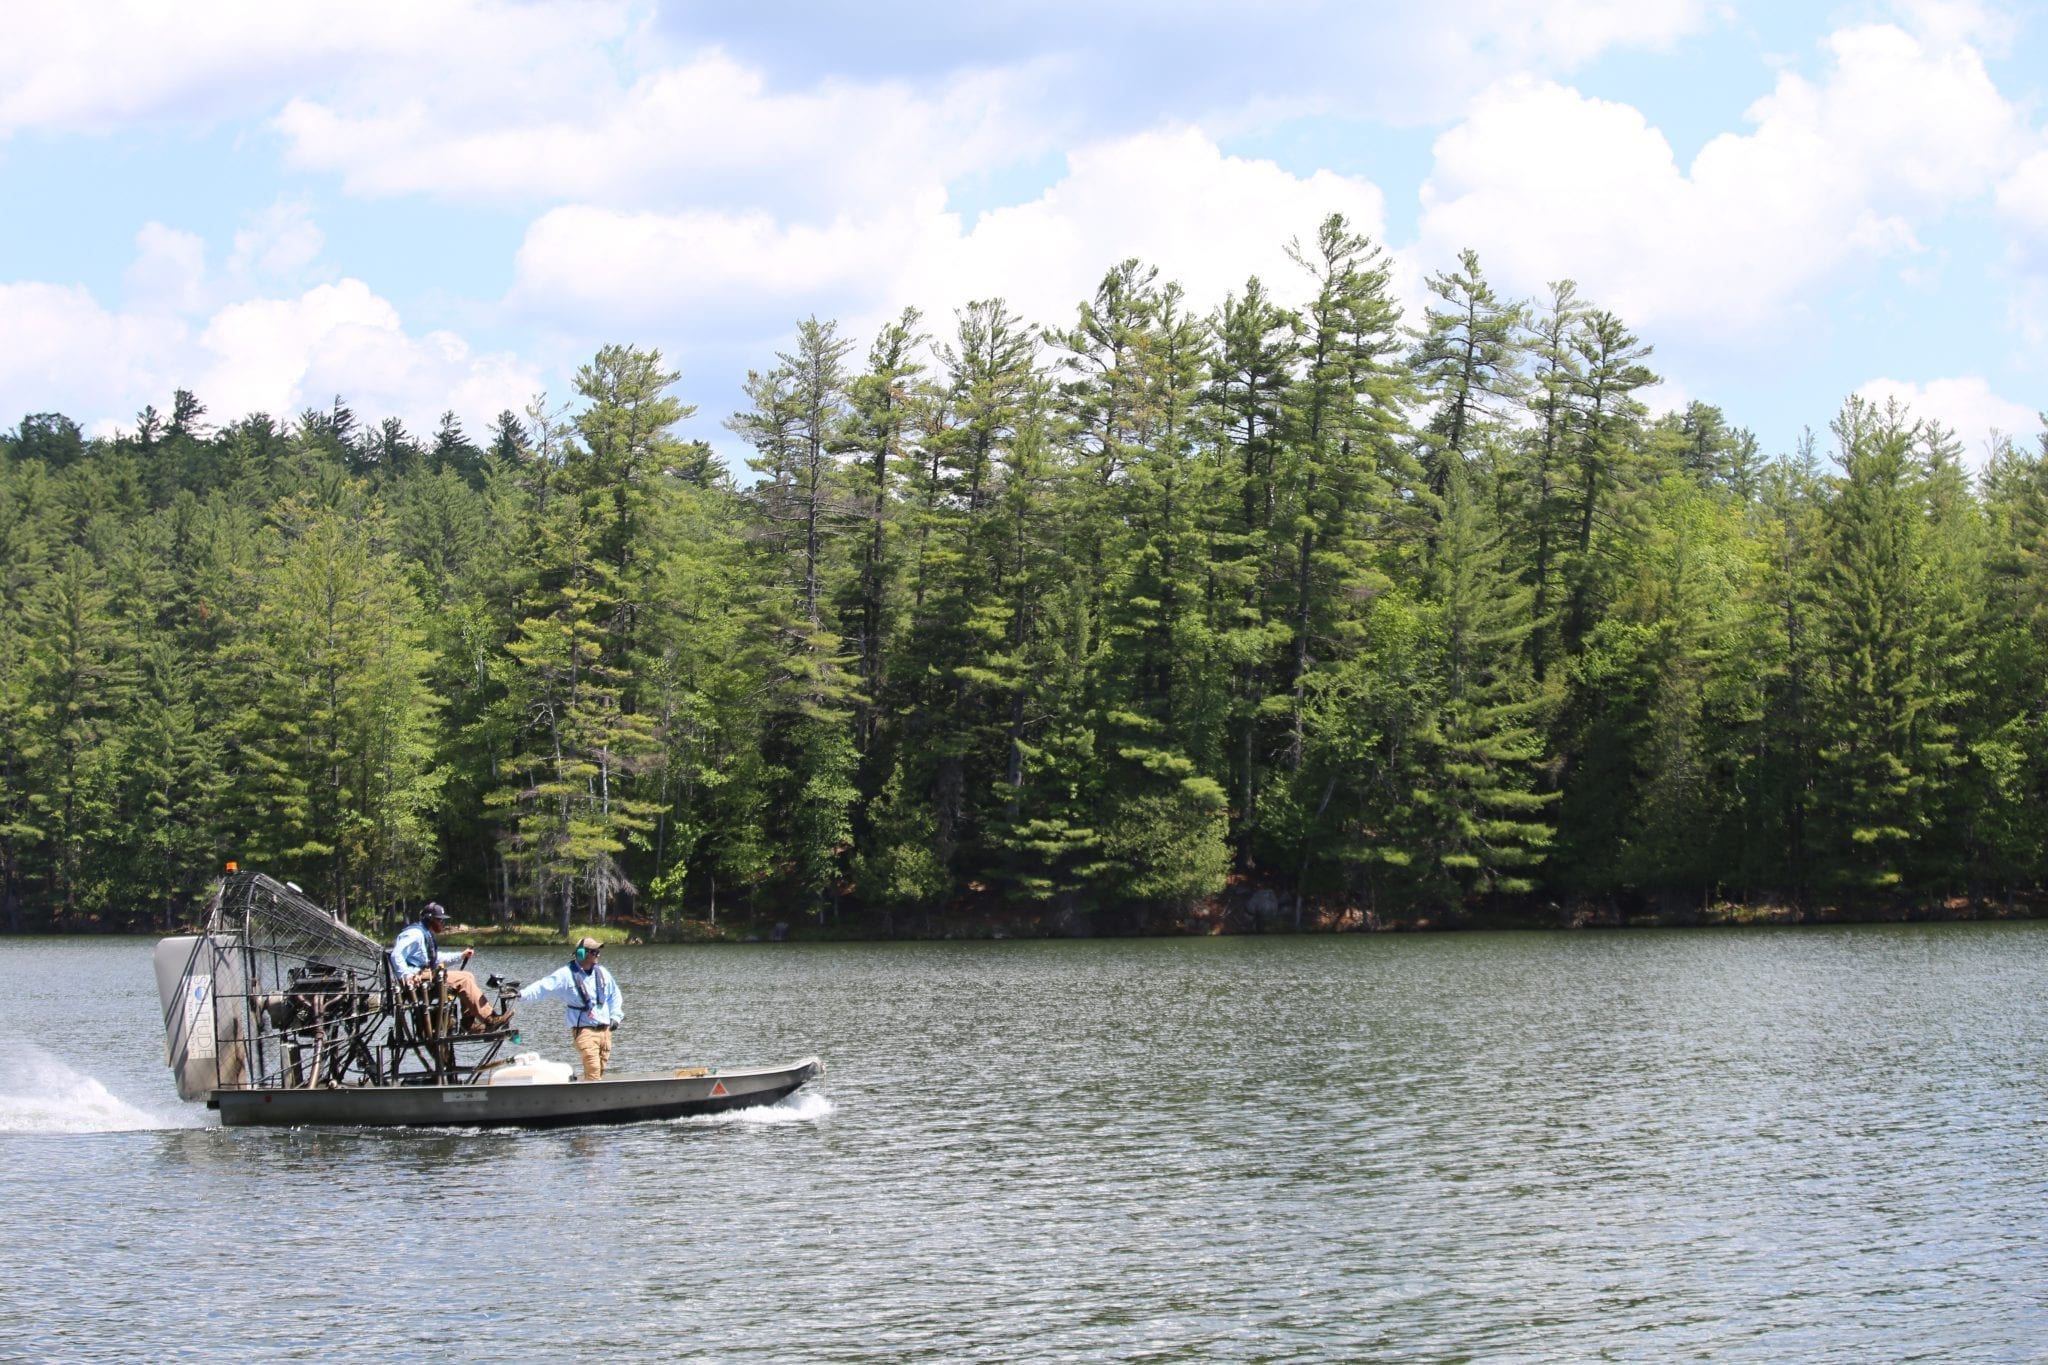 Herbicide for Eurasian watermilfoil